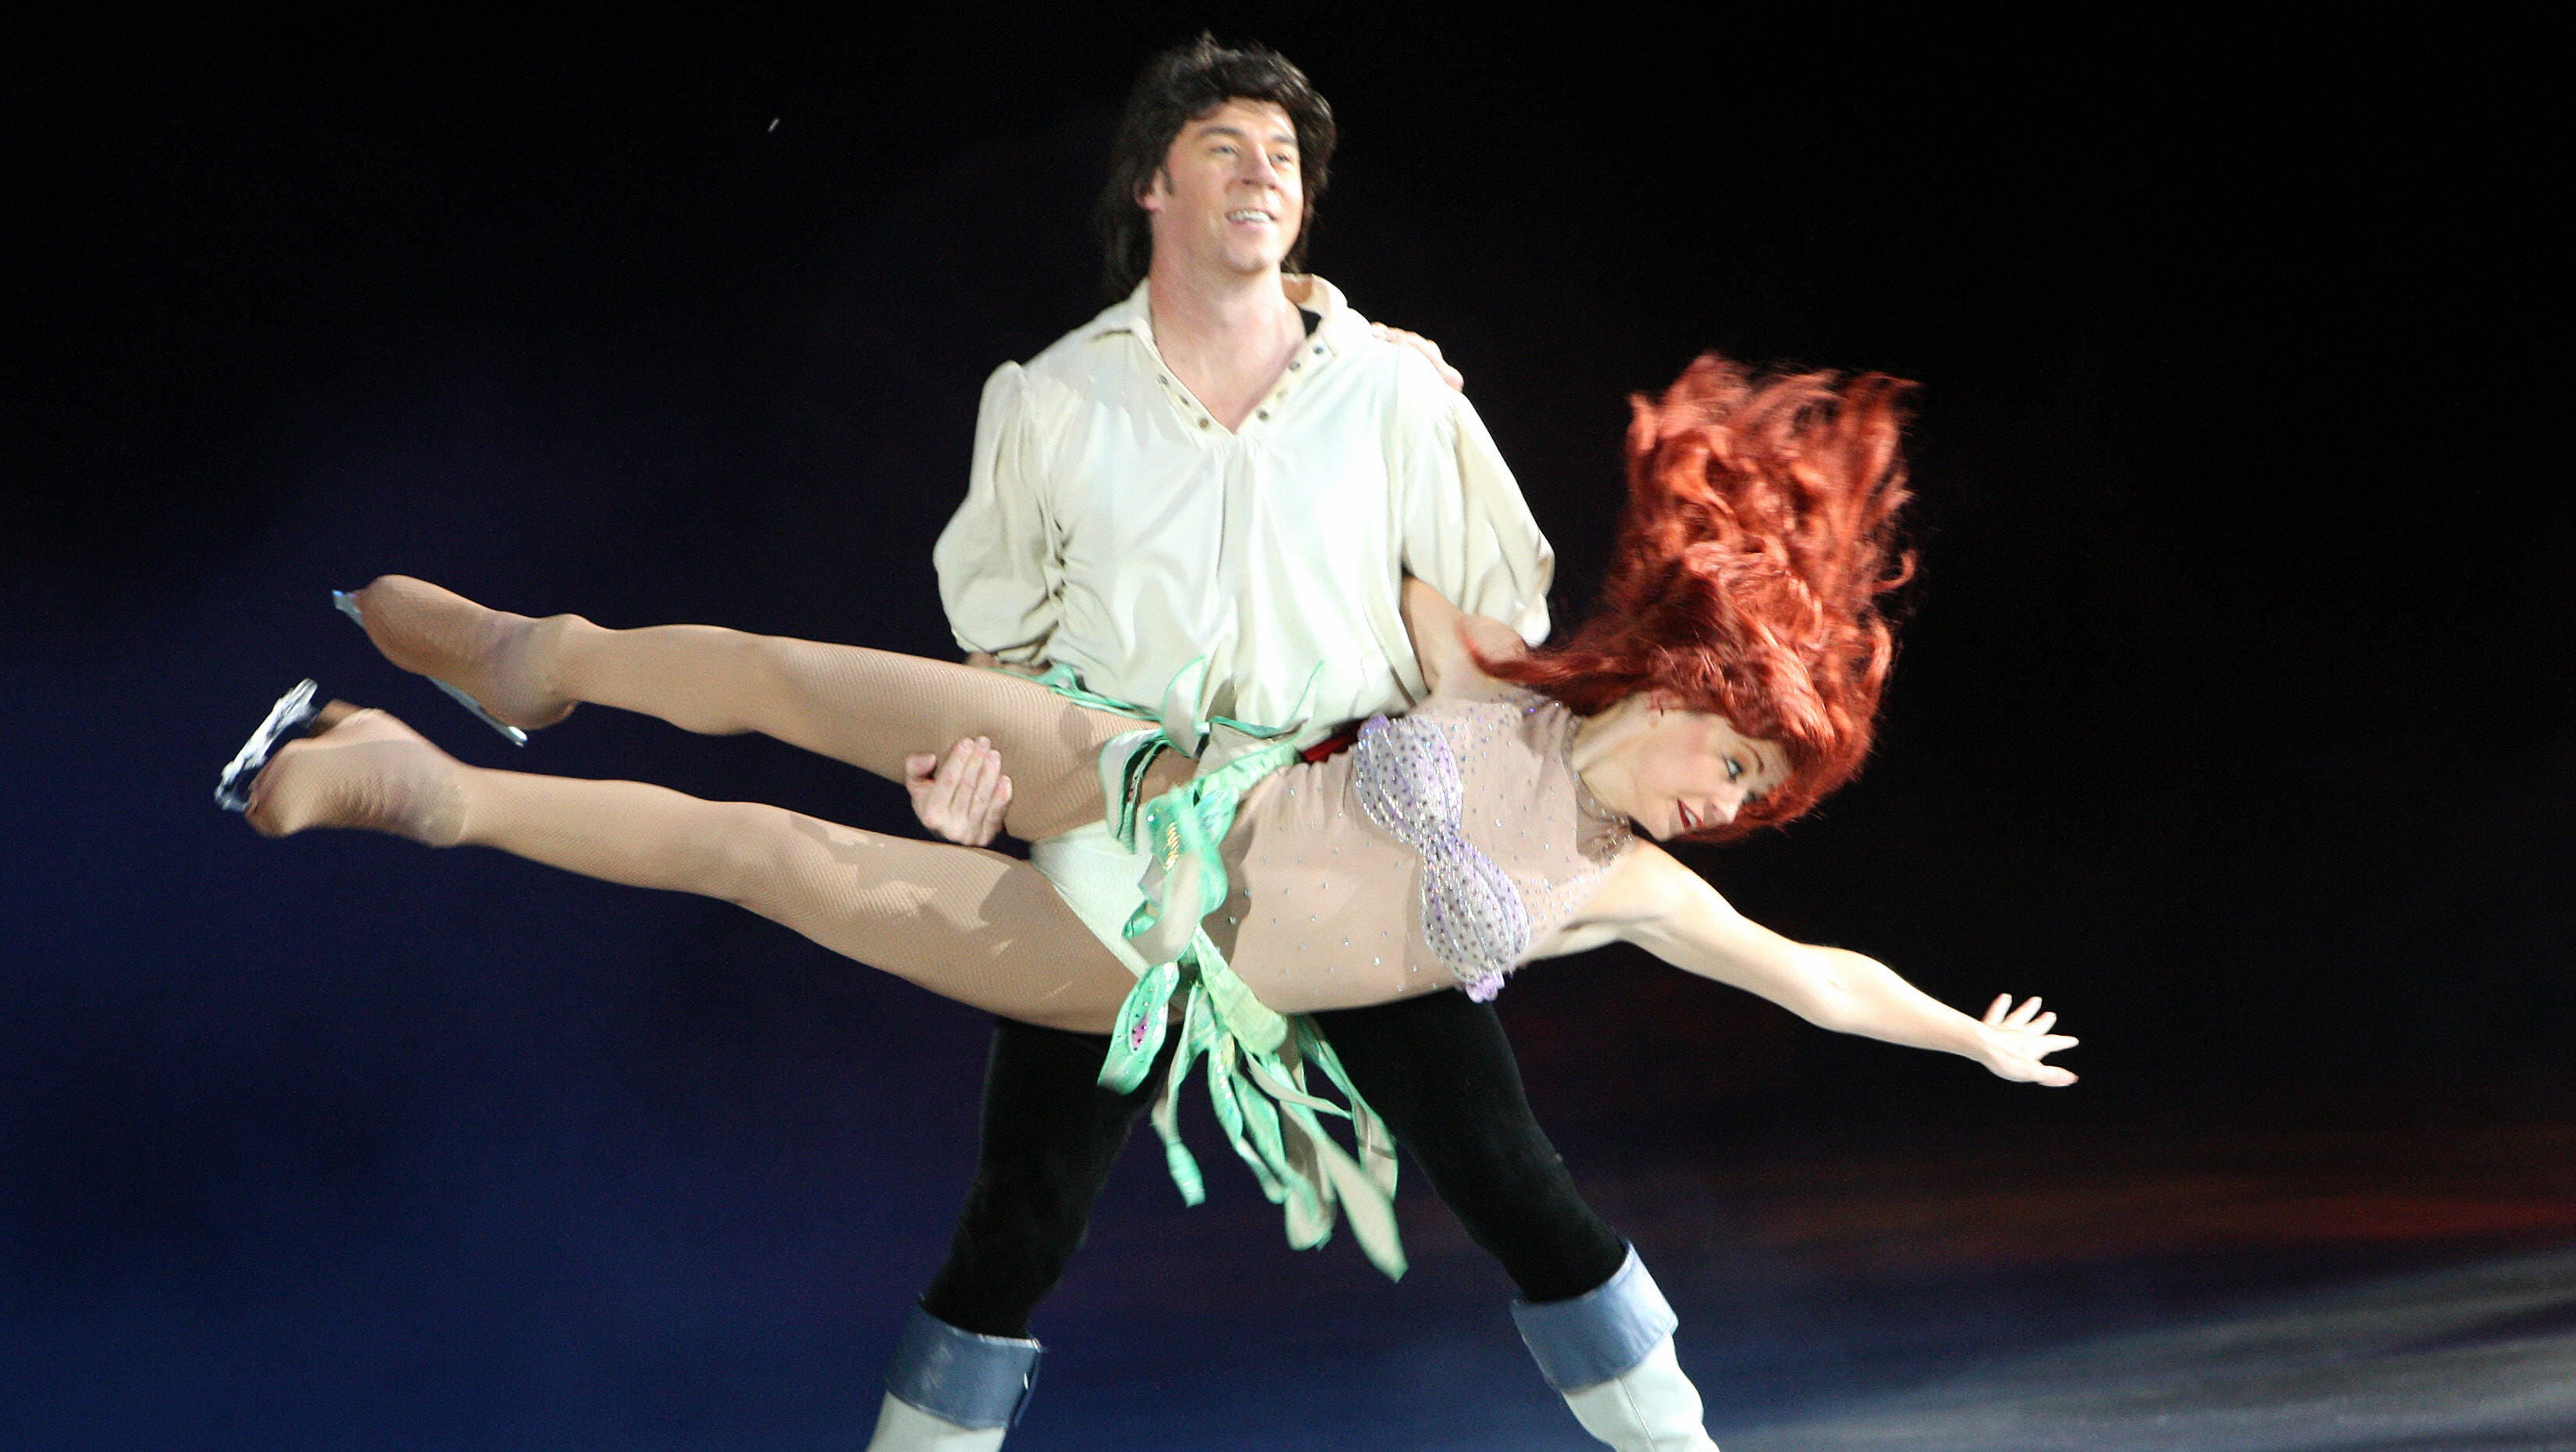 Disney on Ice comes to Des Moines on Nov. 21-25